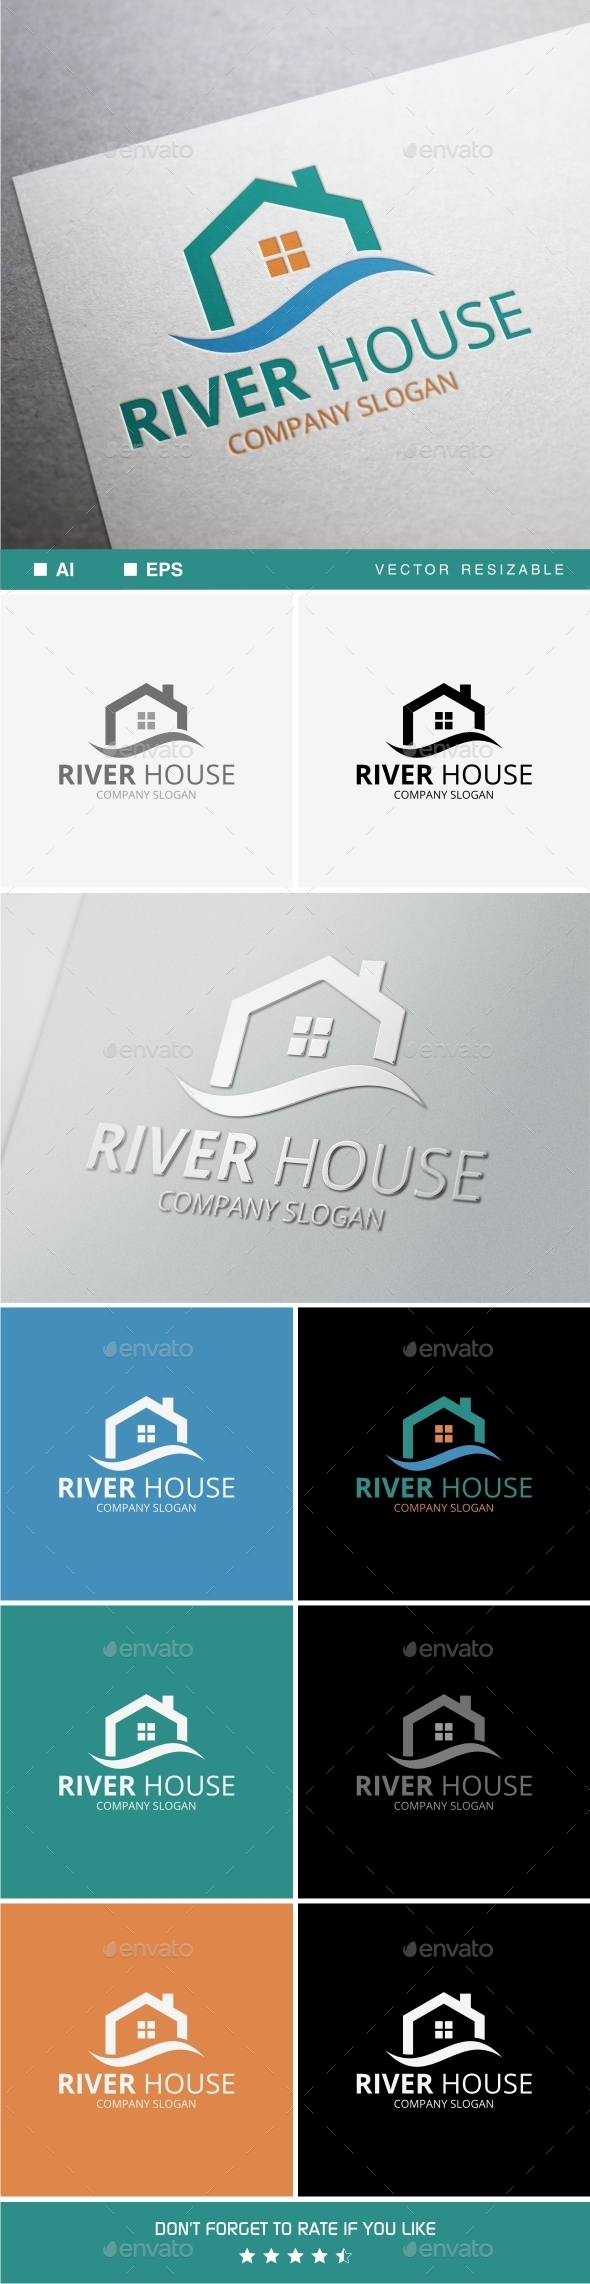 GraphicRiver River House Logo 9849562